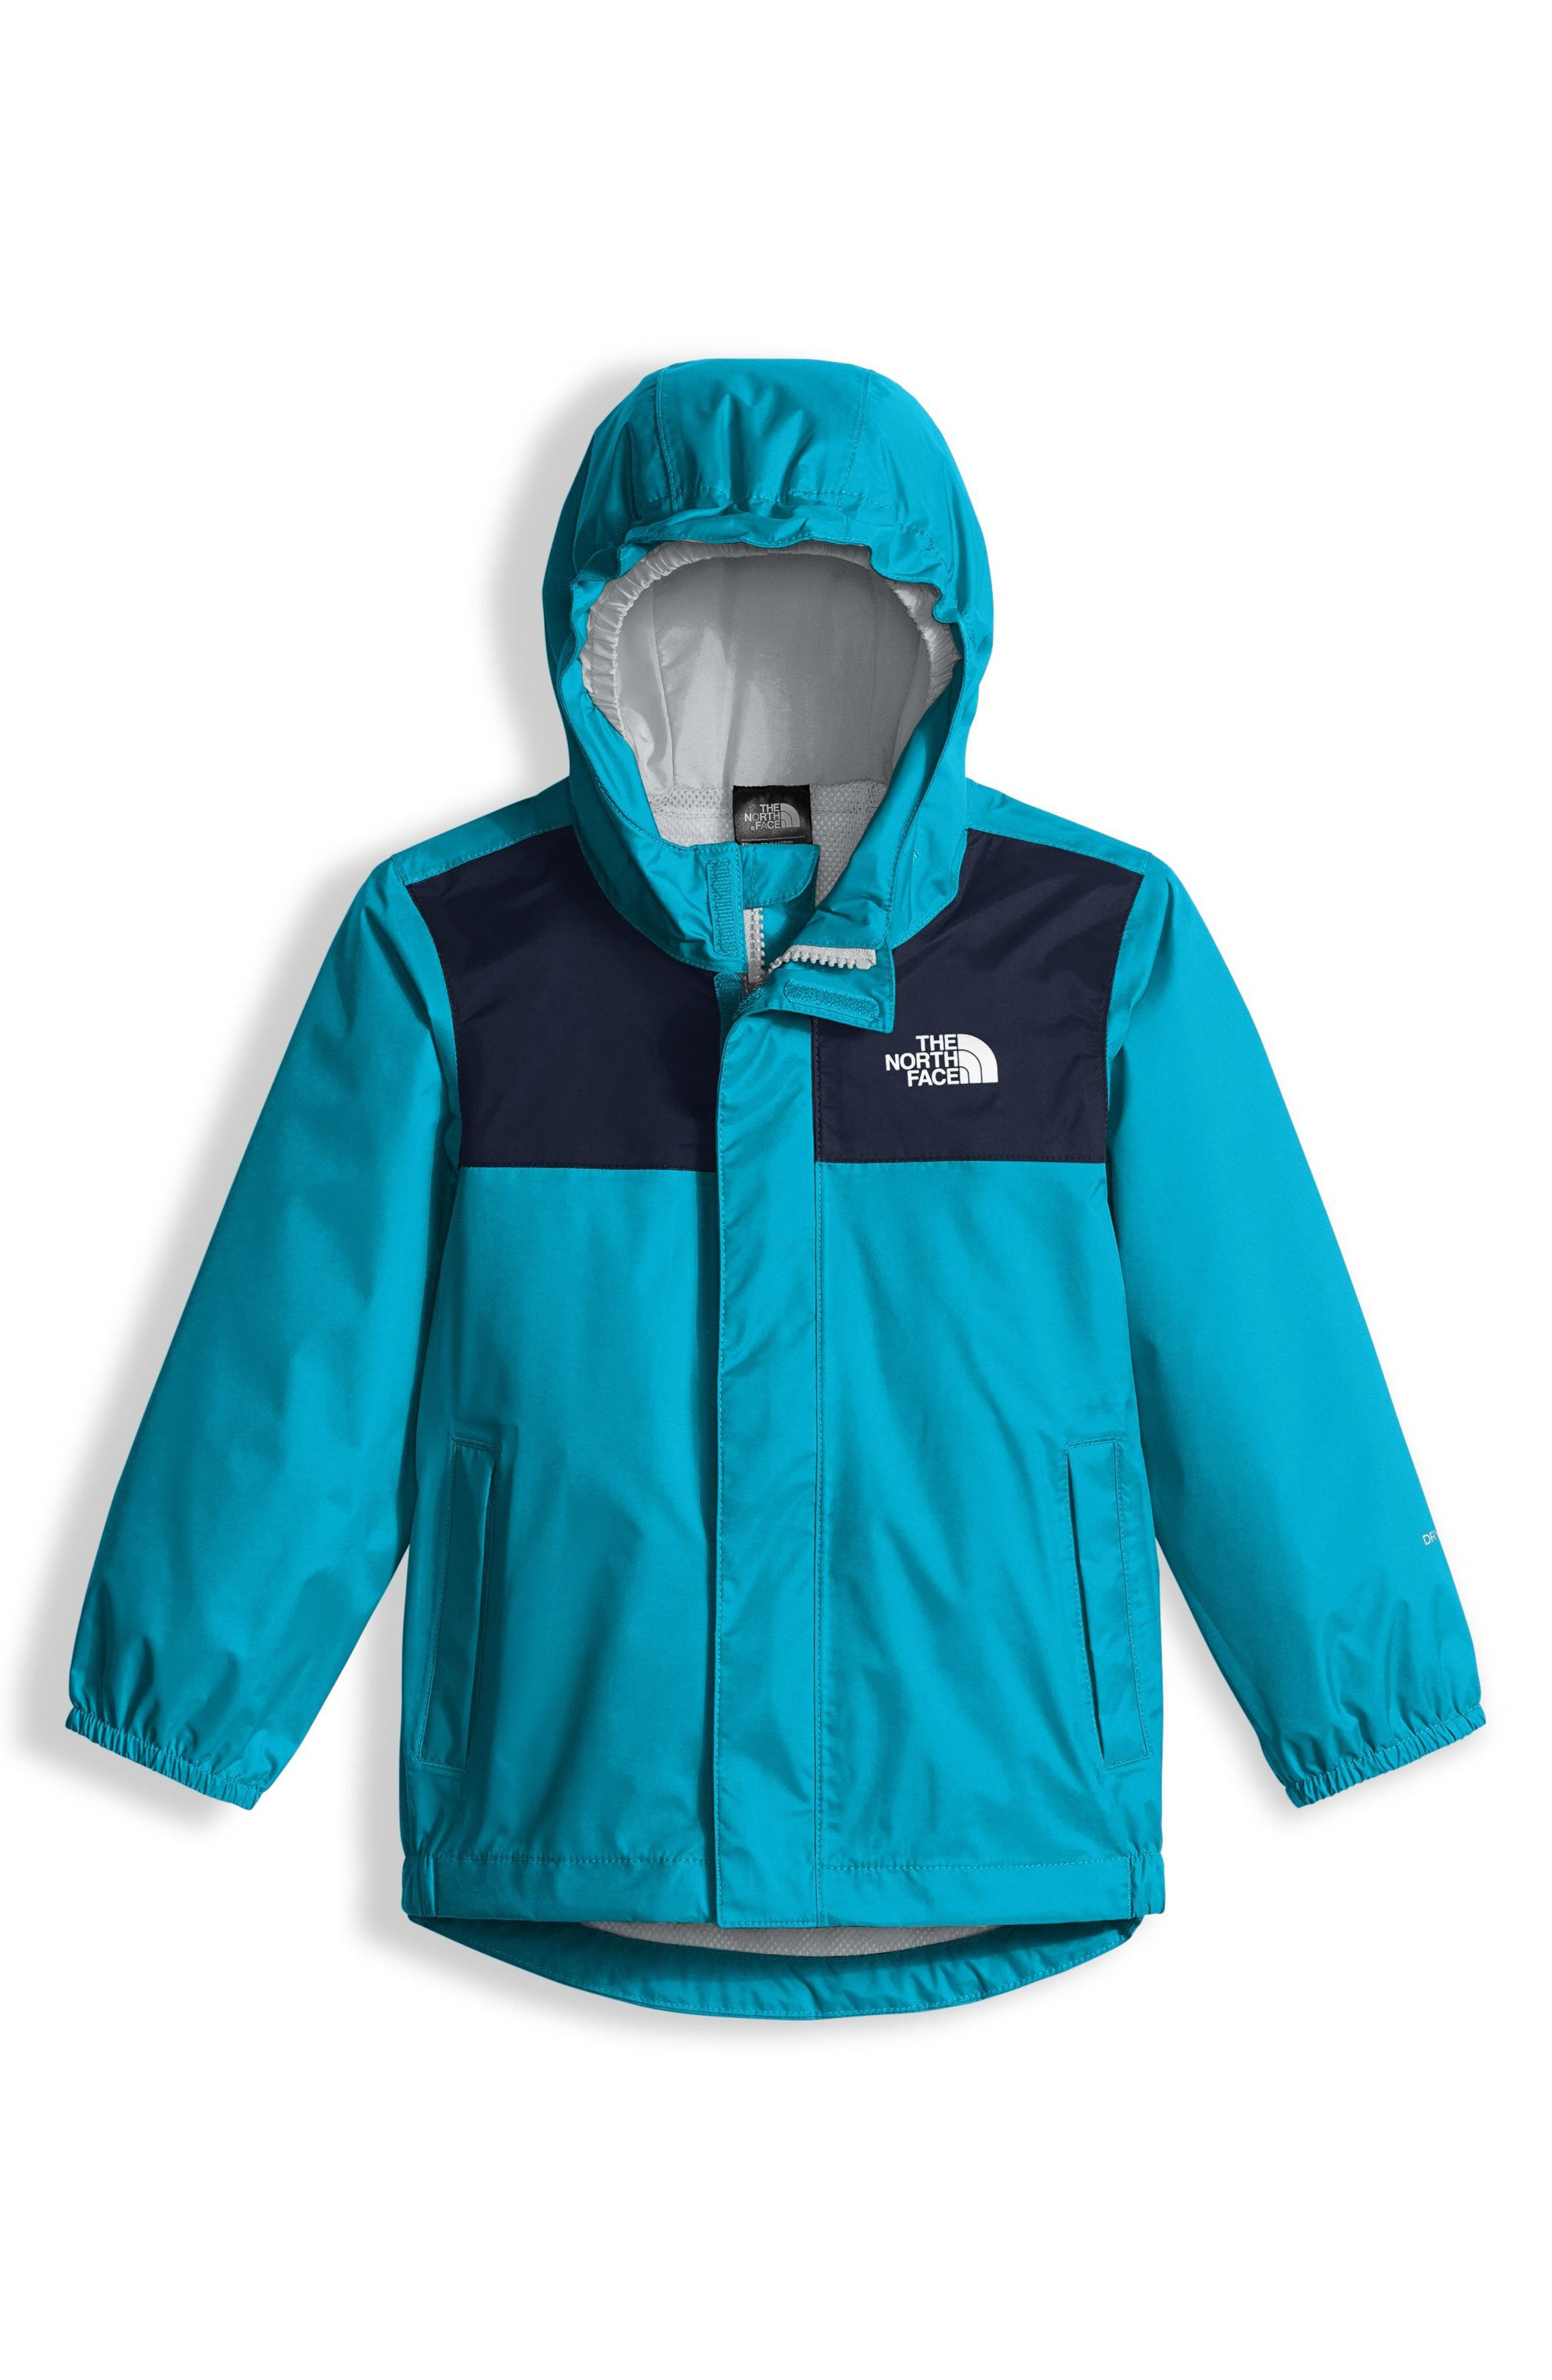 Tailout Hooded Rain Jacket,                         Main,                         color, Turquoise Blue